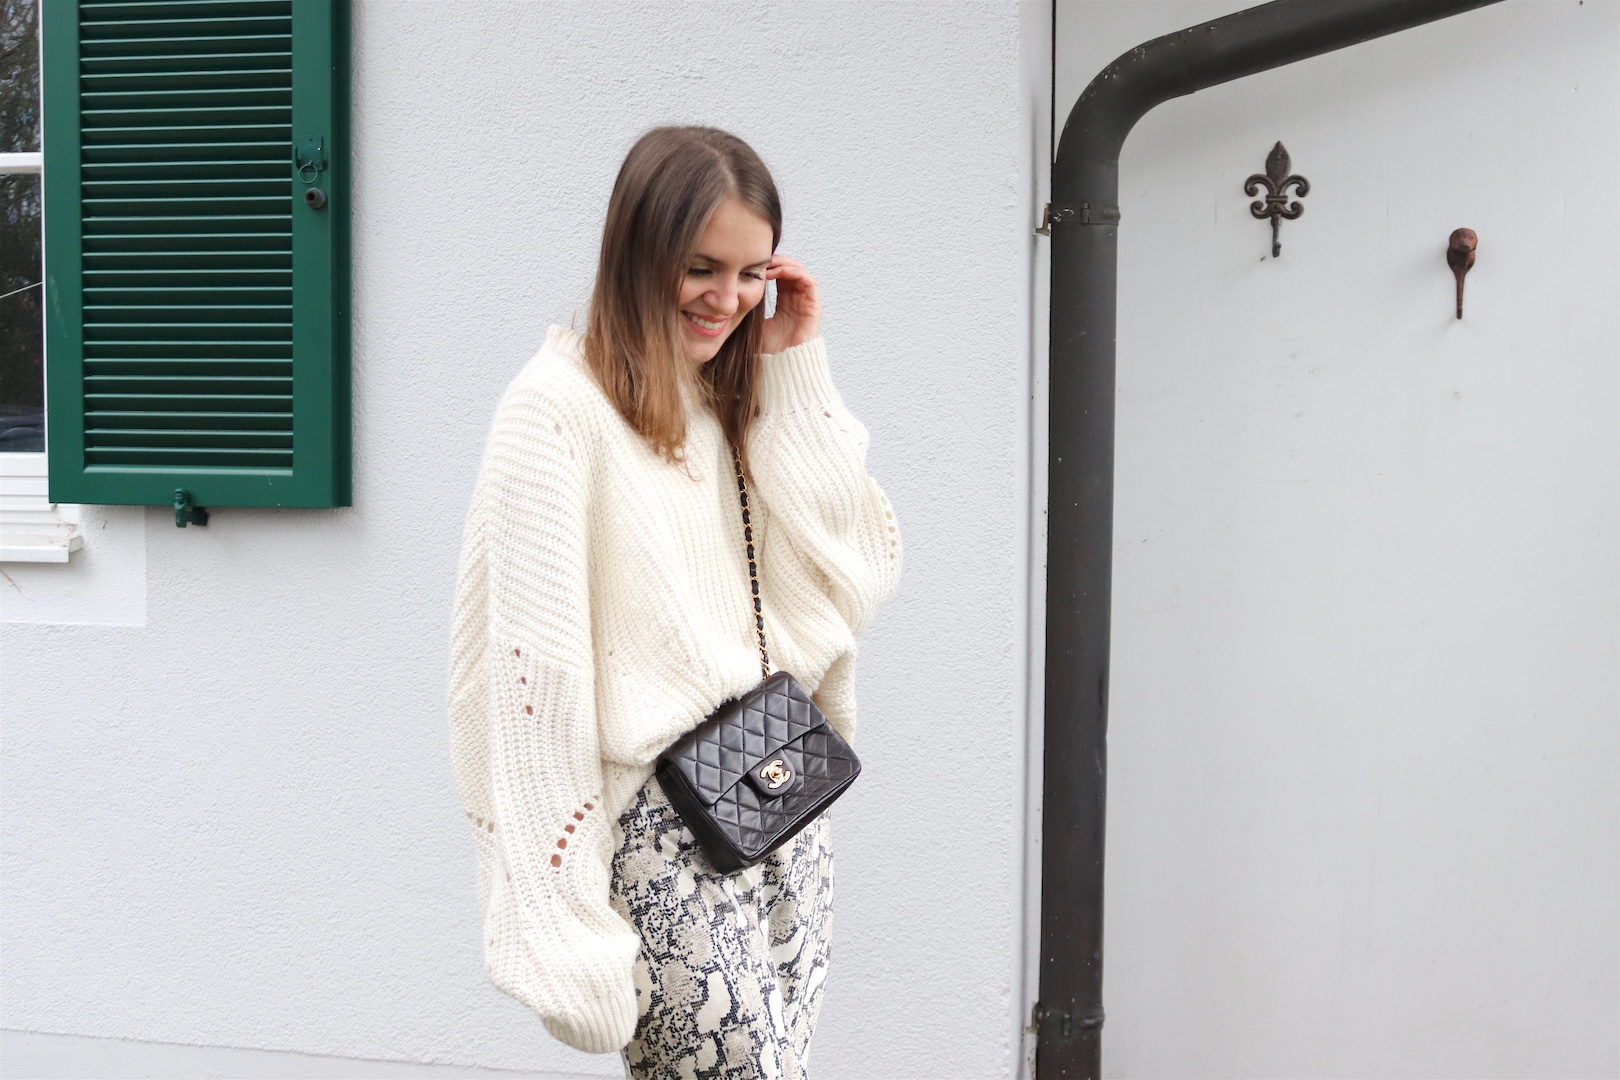 Snake Print Cozy Knit. Fashion Blogger Girl by Style Blog Heartfelt Hunt. Girl with blond hair wearing a snake print skirt, knit sweater, vintage Chanel bag and boots.